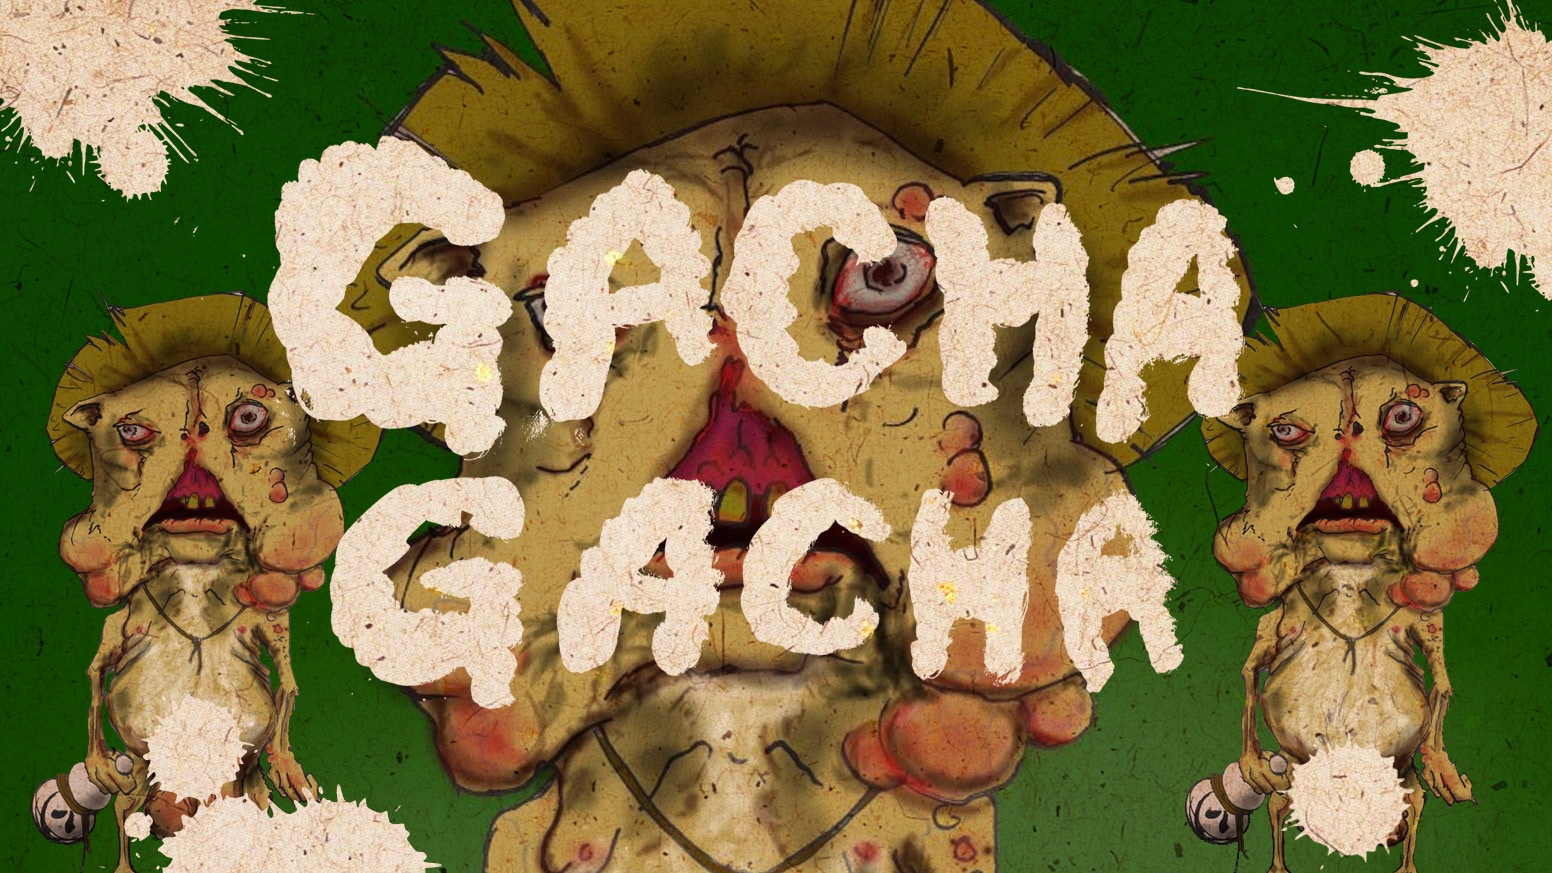 GACHA GACHA - A nightmarish short film with a gooey tanuki! is the top crowdfunding project launched today. GACHA GACHA - A nightmarish short film with a gooey tanuki! raised over $372150 from 80 backers. Other top projects include ARMIES & LEGIONS & HORDES, Durable drinking bottles that will help reduce plastic waste, FROM BEYOND:DESCENT Sci-fi RPG Starfinder Roleplay Adventure...